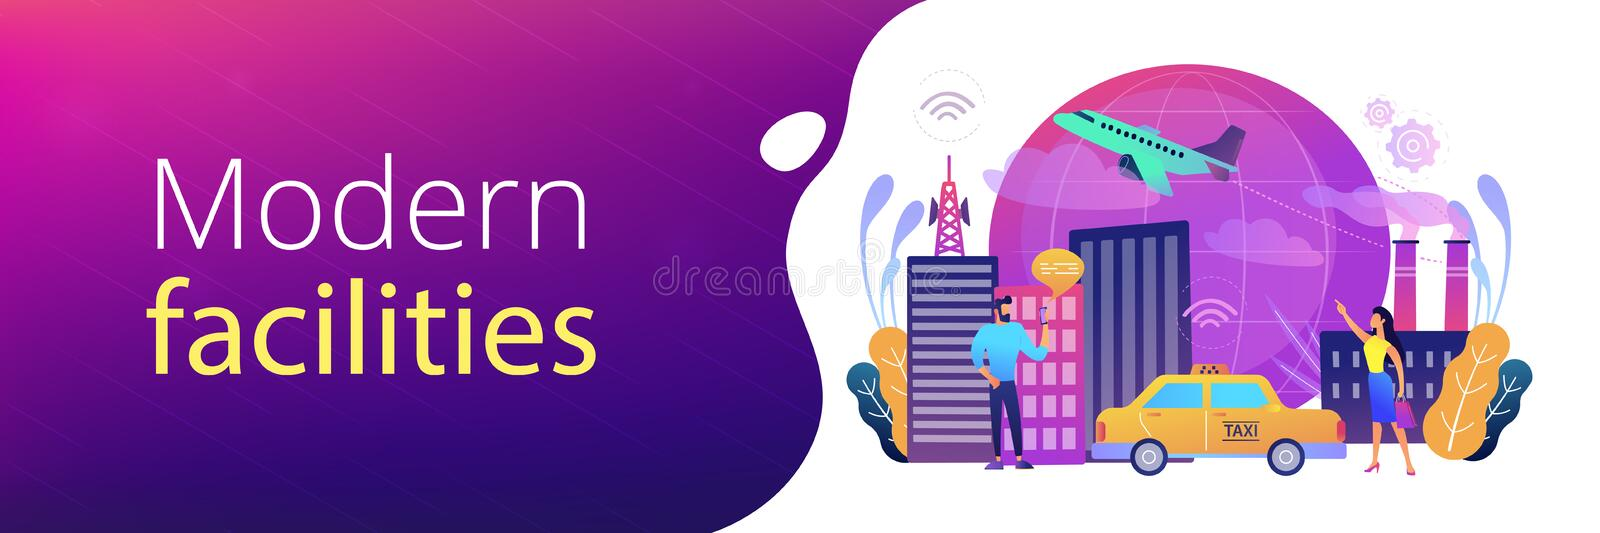 Global internet of things smart city header banner vector illustration